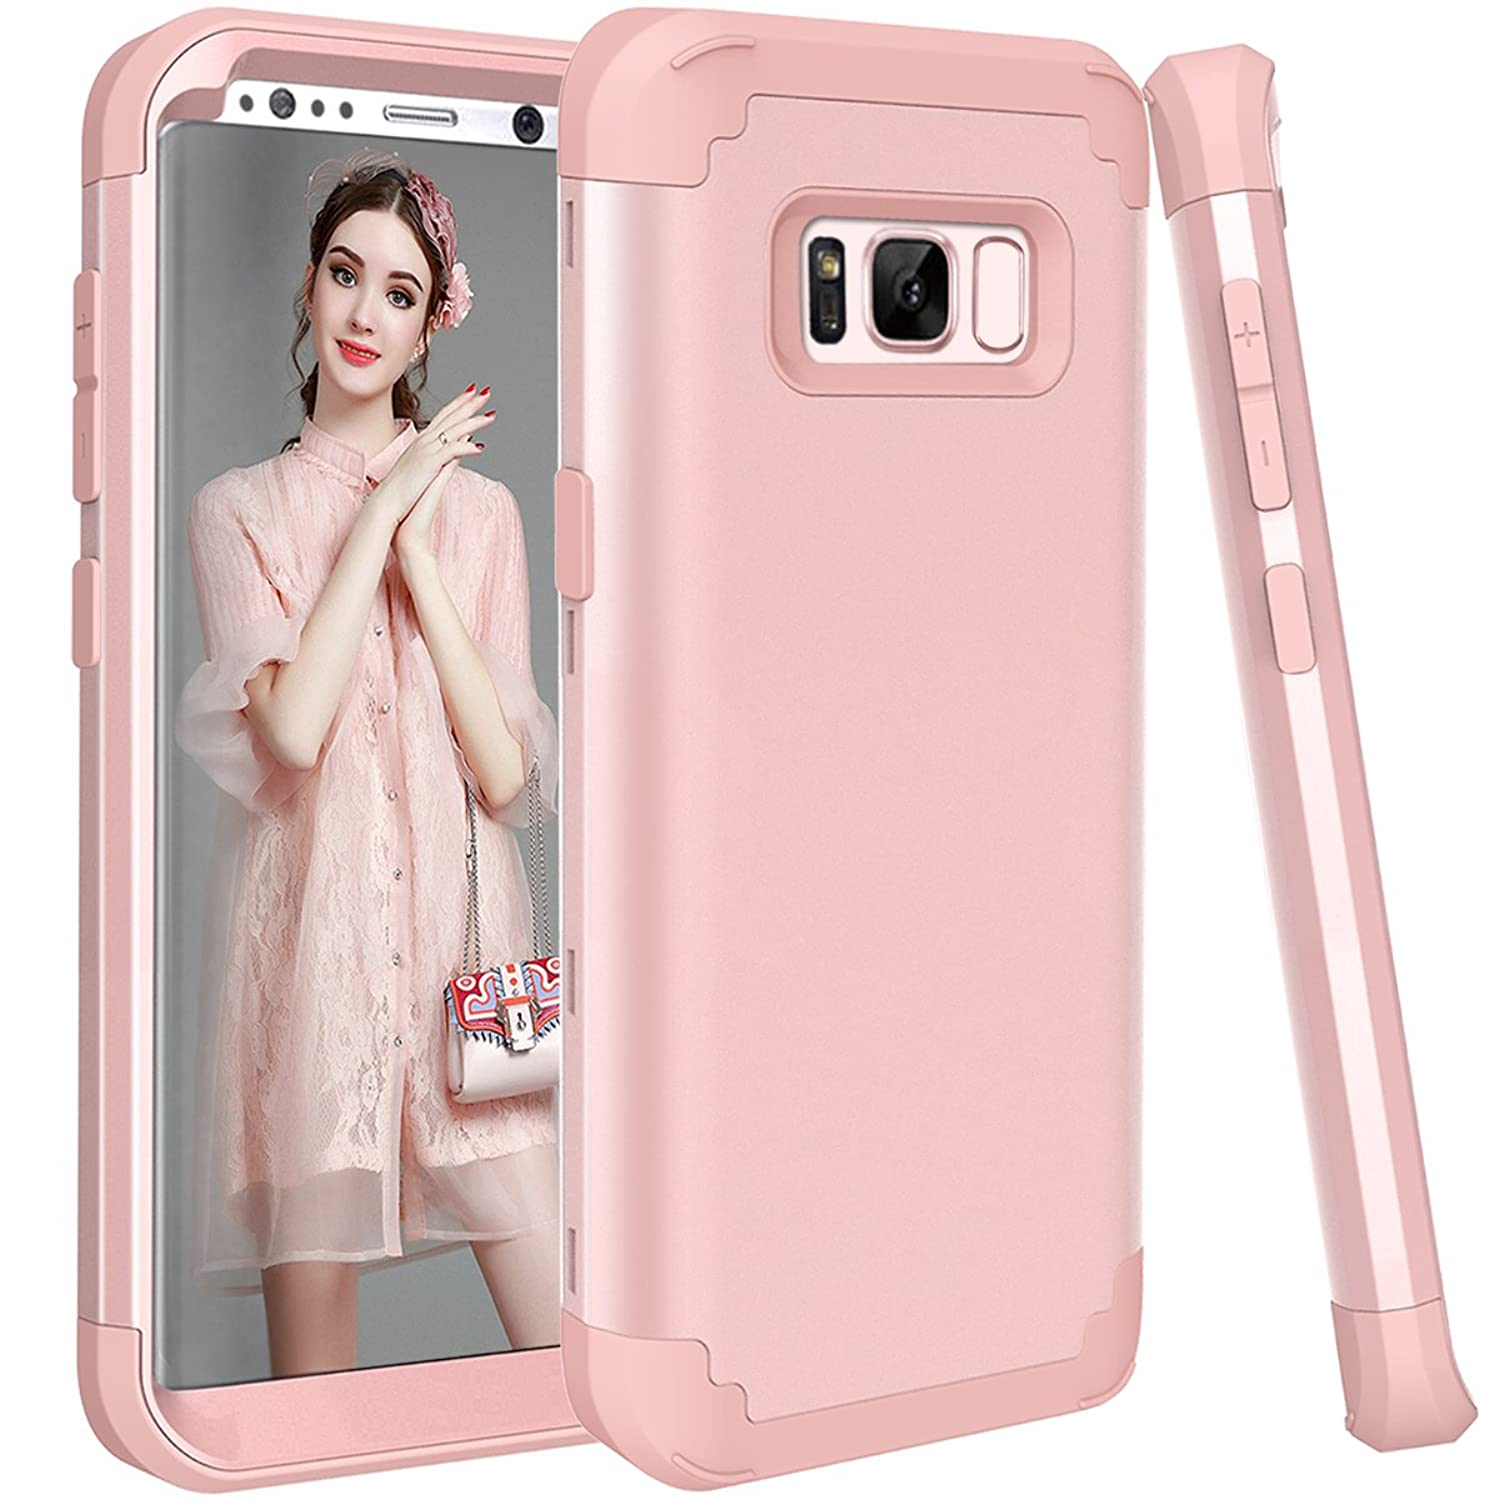 Galaxy S8 Plus Case, MCUK [Shock Absorption] 3 in 1 Drop Protection High Impact Hybrid Armor Defender Silicone Rubber Skin Hard Case Cover For Samsung Galaxy S8 Plus / S8+ (2017) (Rose Gold)